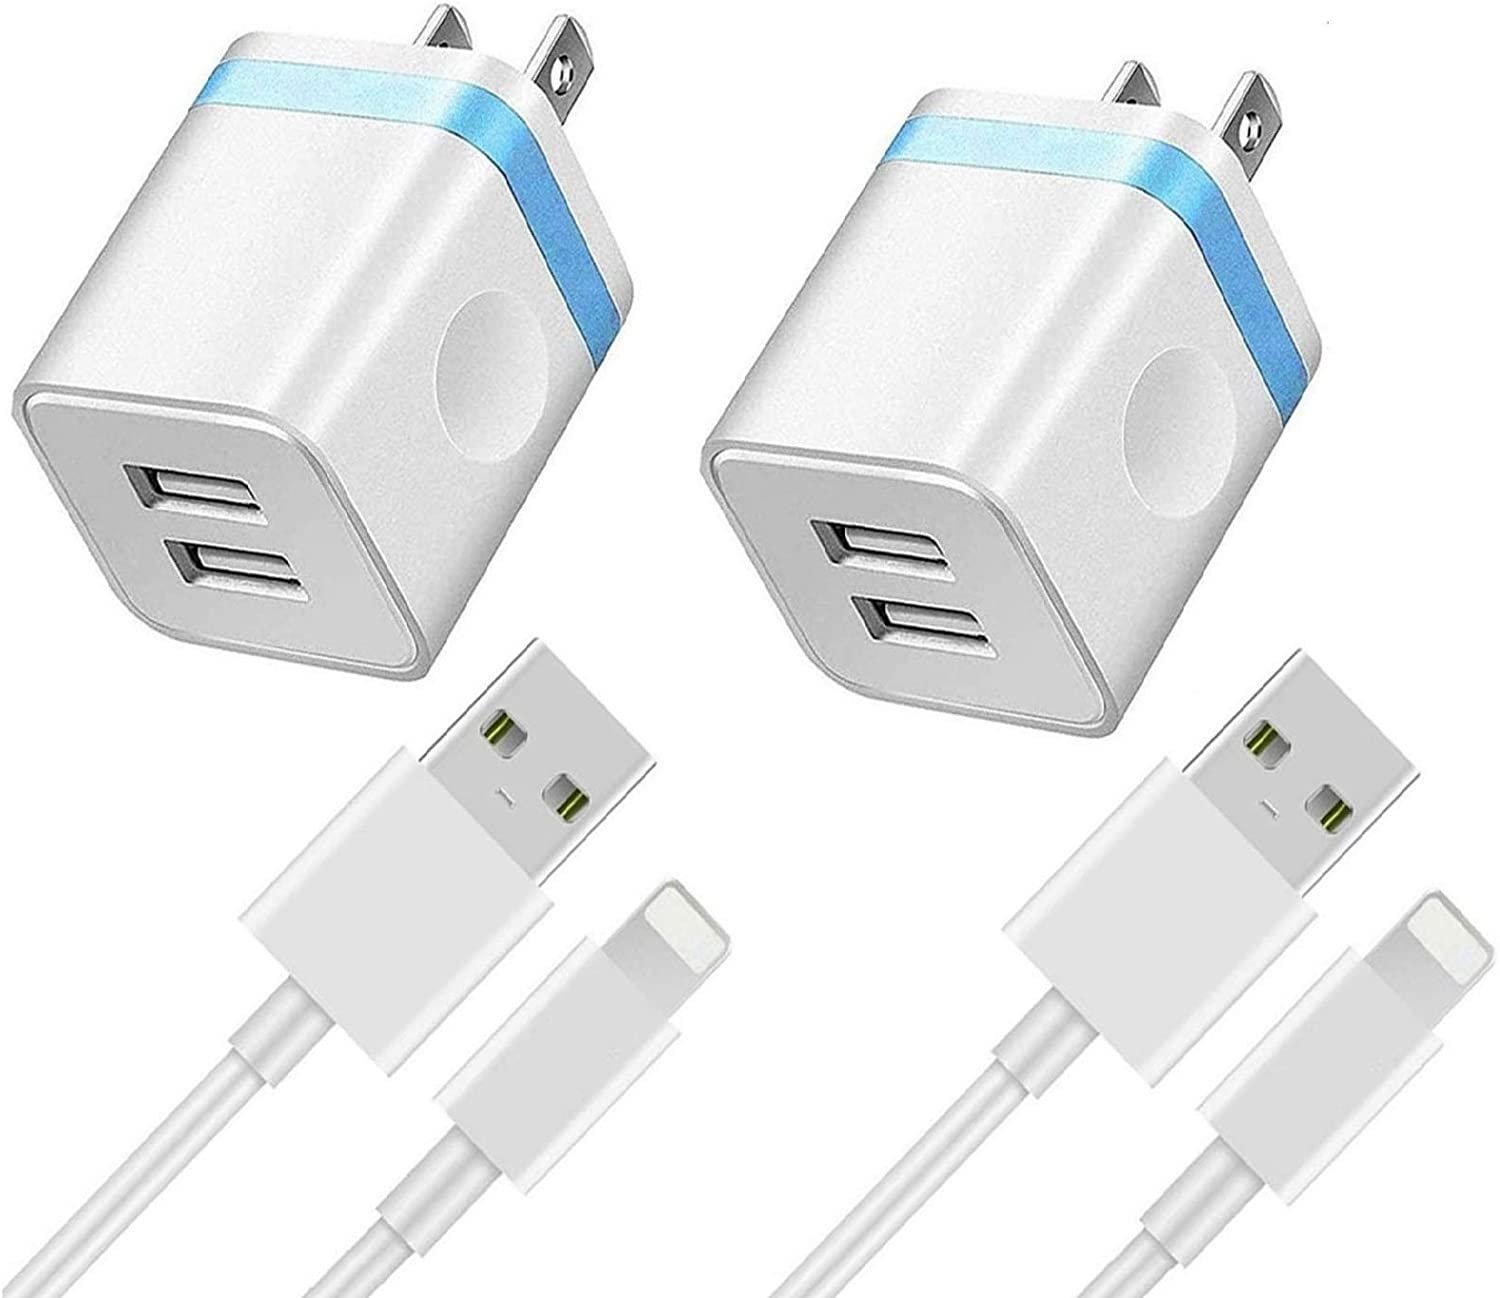 iPhone Charger (4-Pack) Apple MFi Certified 6FT Lightning Cable and Dual USB Wall Charger Compatible with iPhone 12 11 Xs Max XR X 8 7 6S 6 Plus SE2 5S iPad, Travel Power Adapter Wall Charger